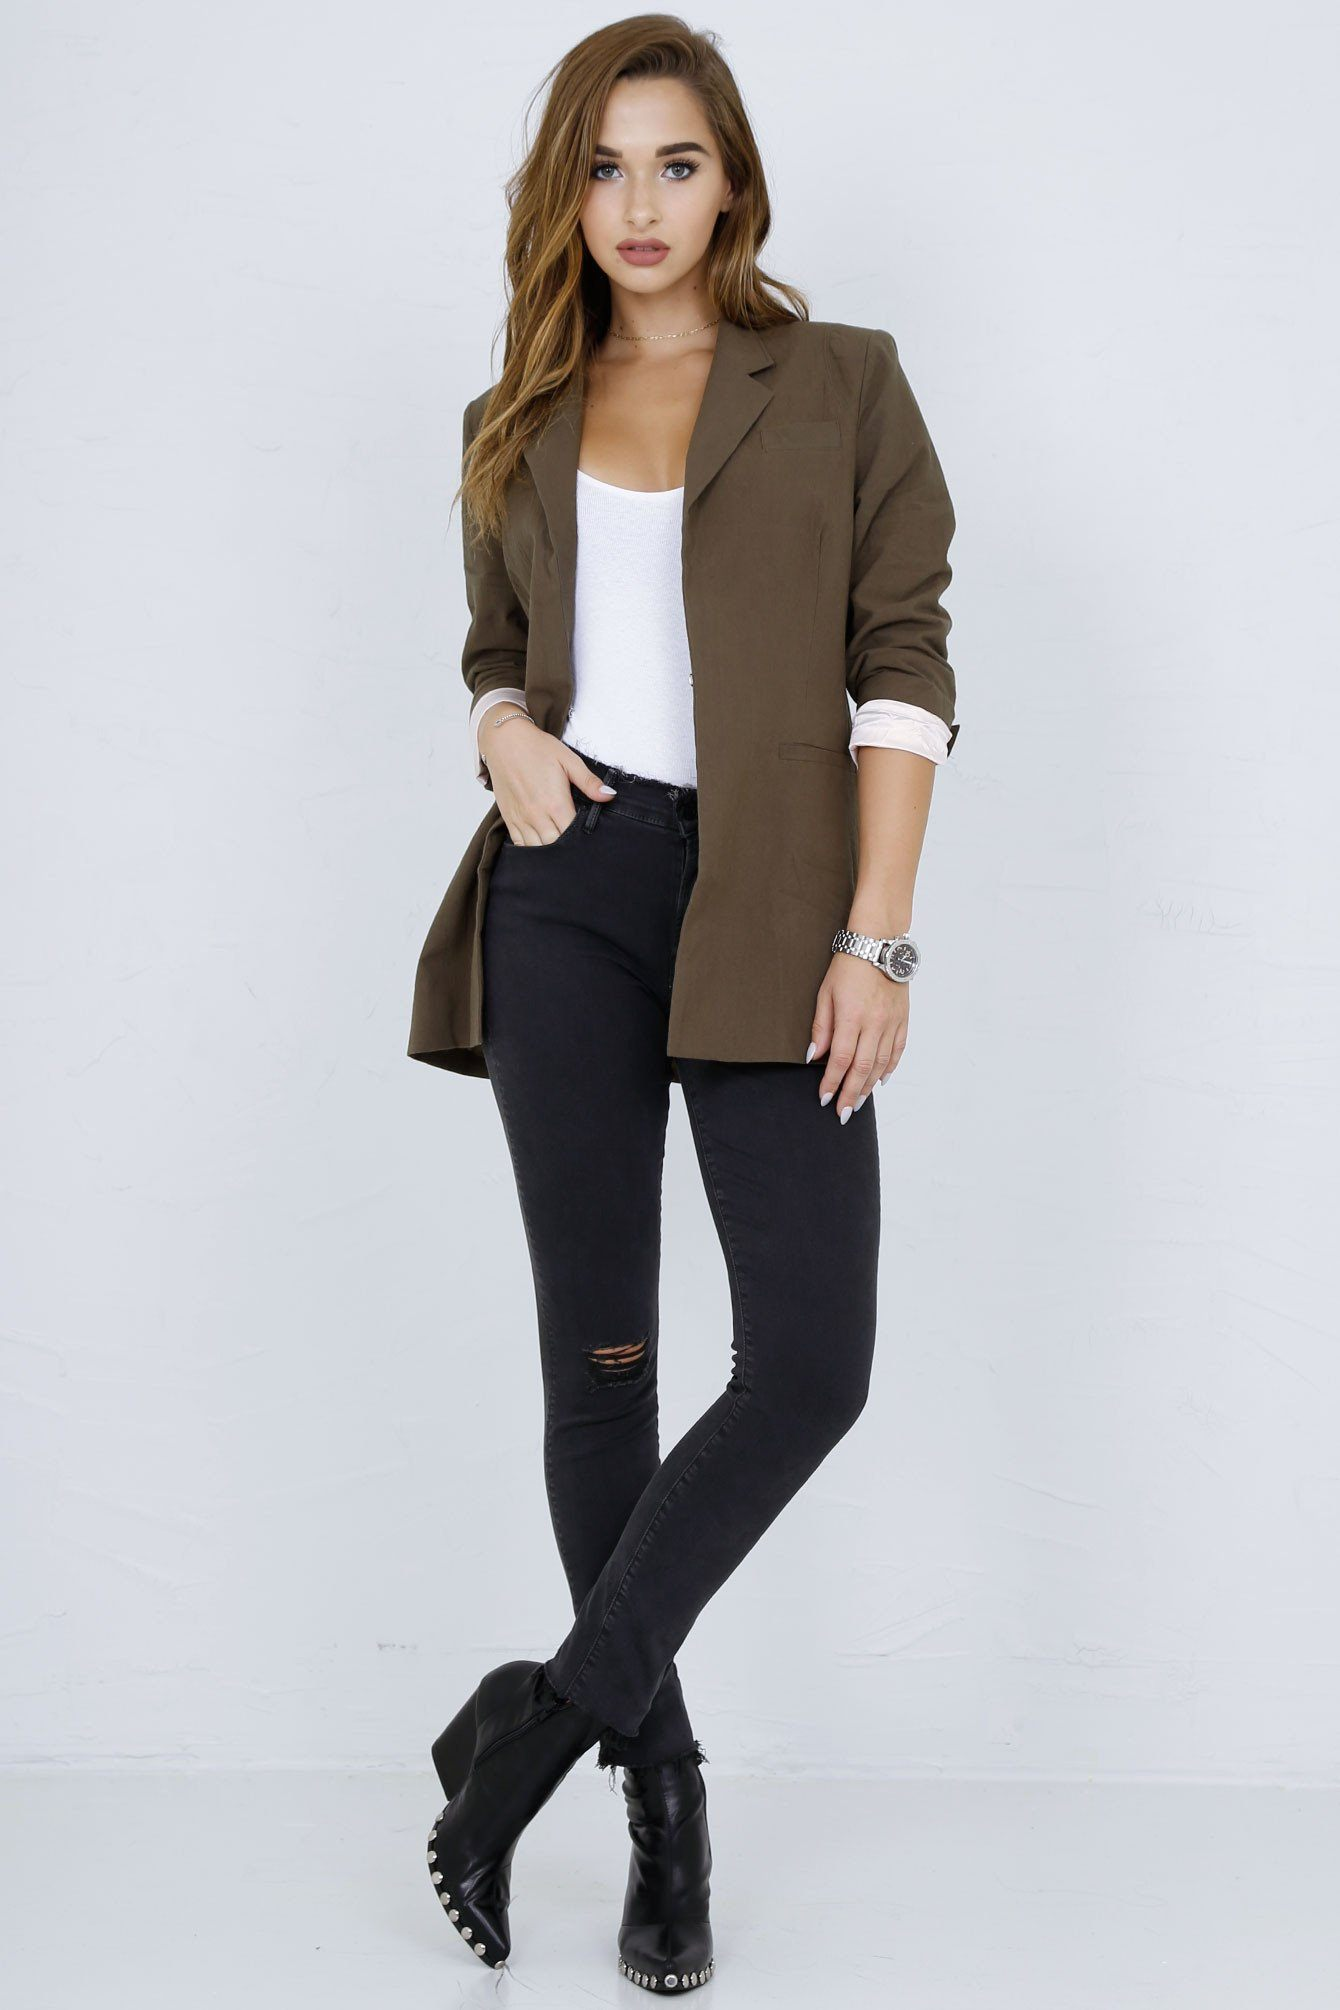 SCARLET | Perfect Blazer in Army - Scarlet Clothing  - 7